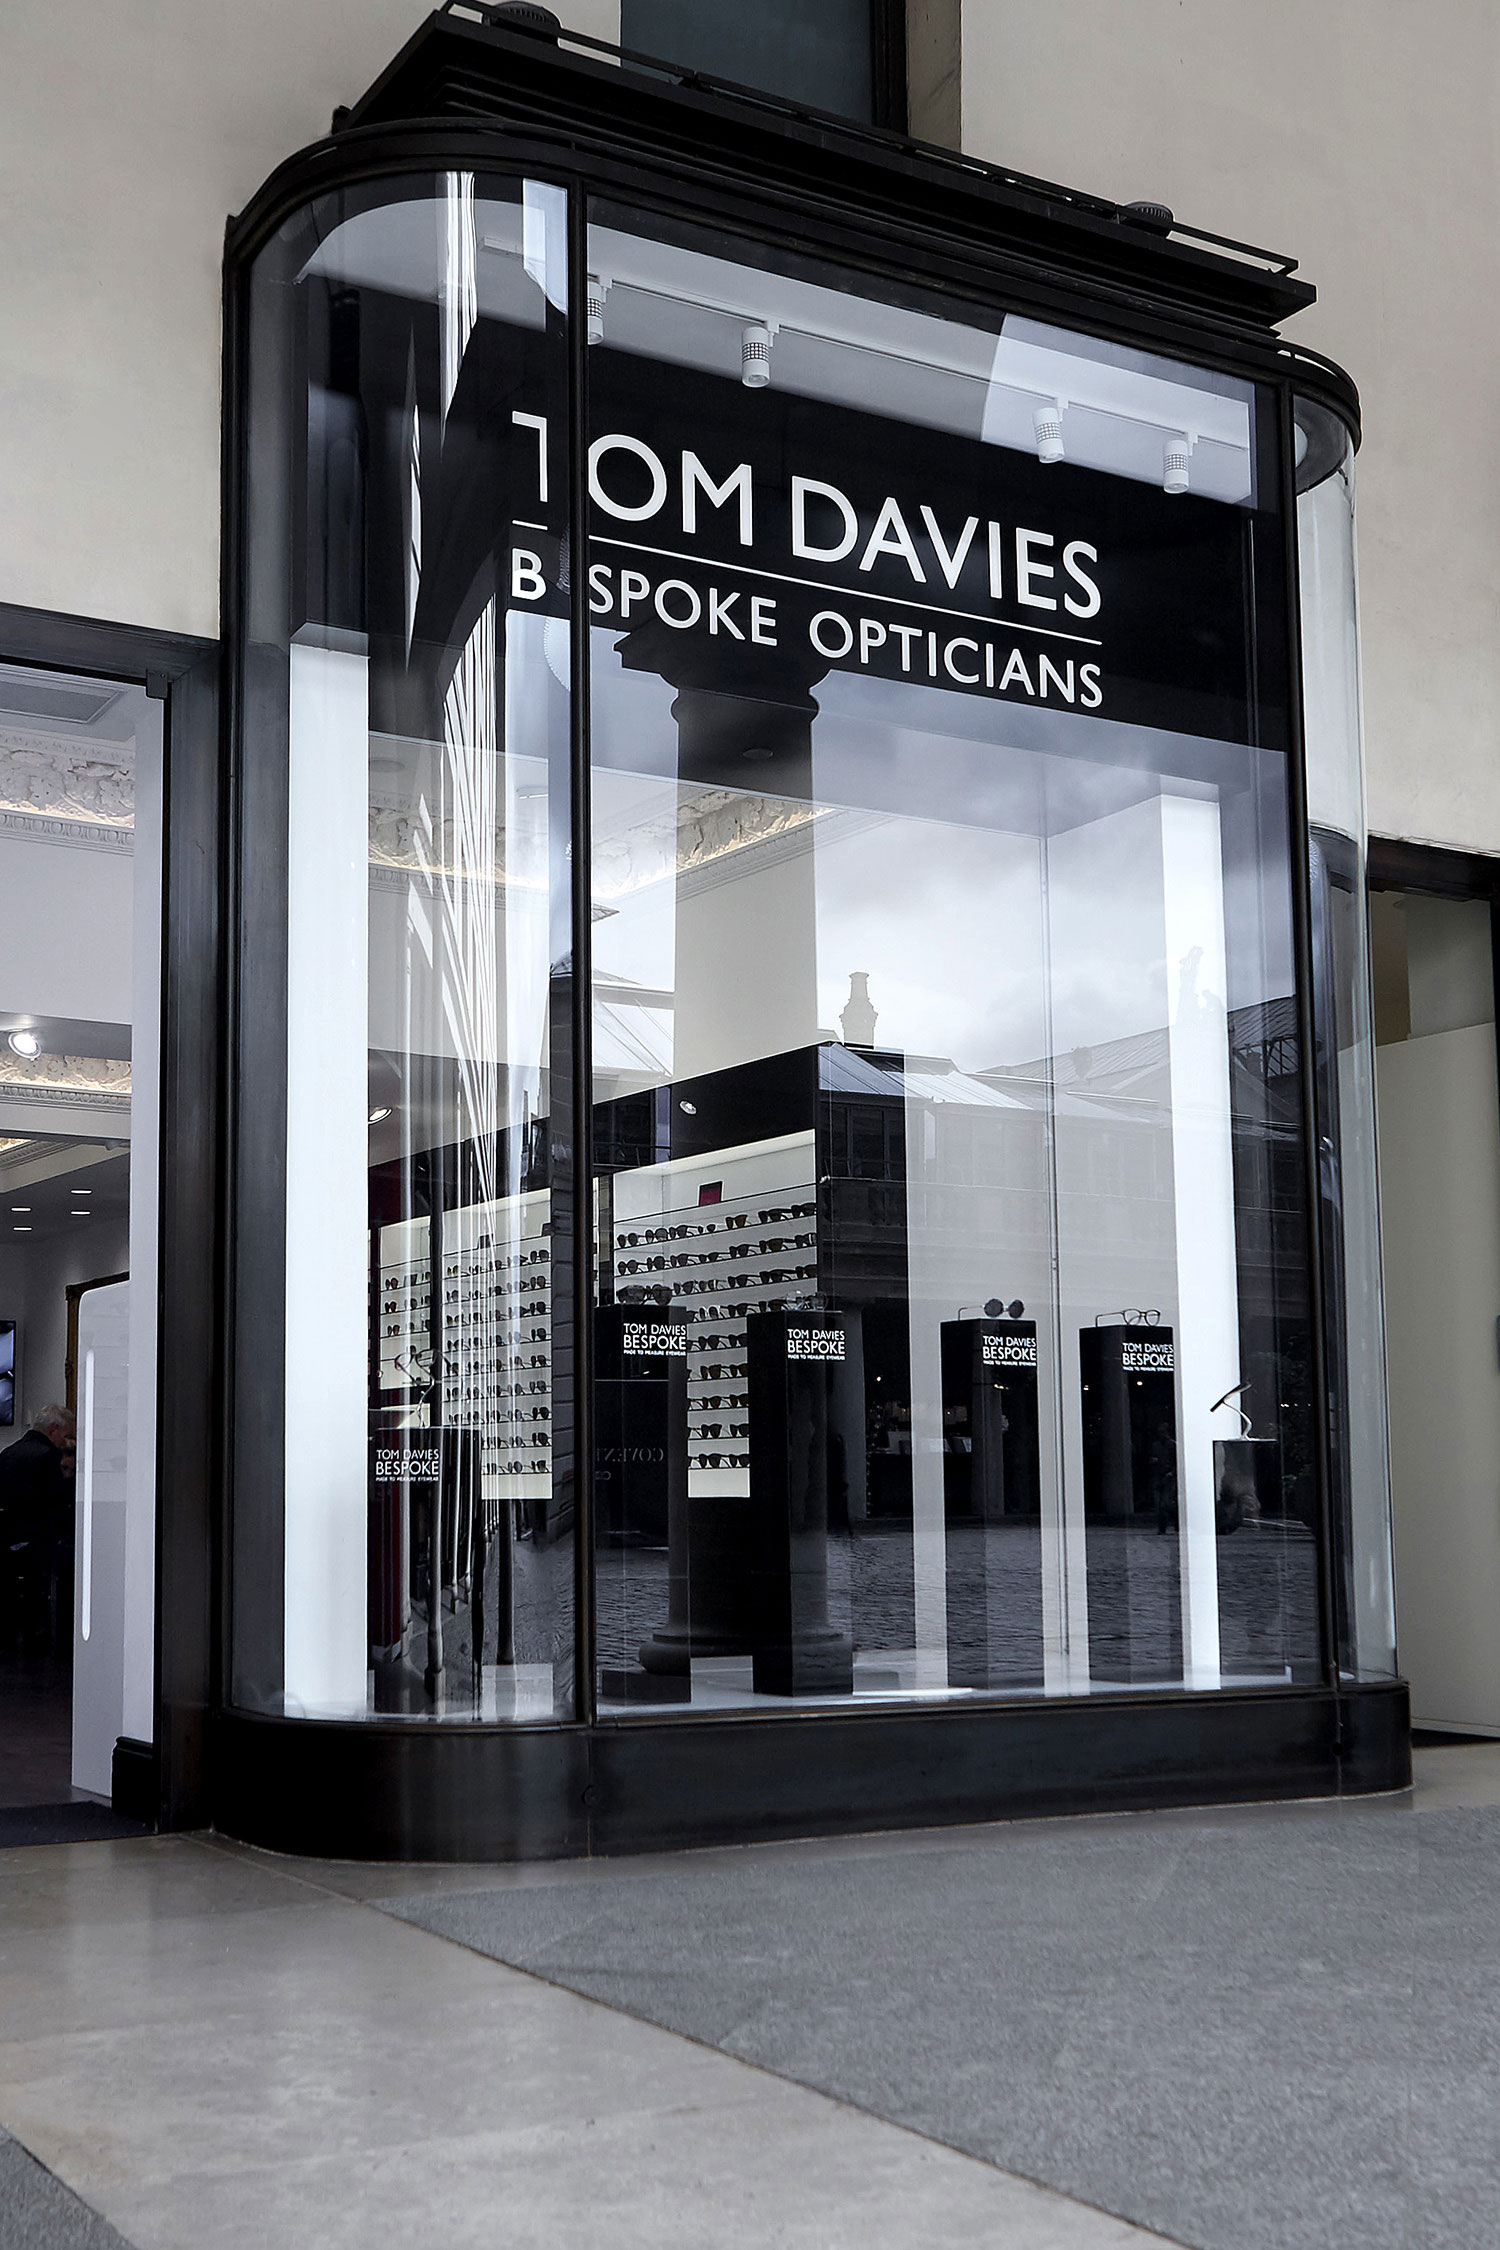 Tom Davies Bespoke Opticians store in Covent Garden